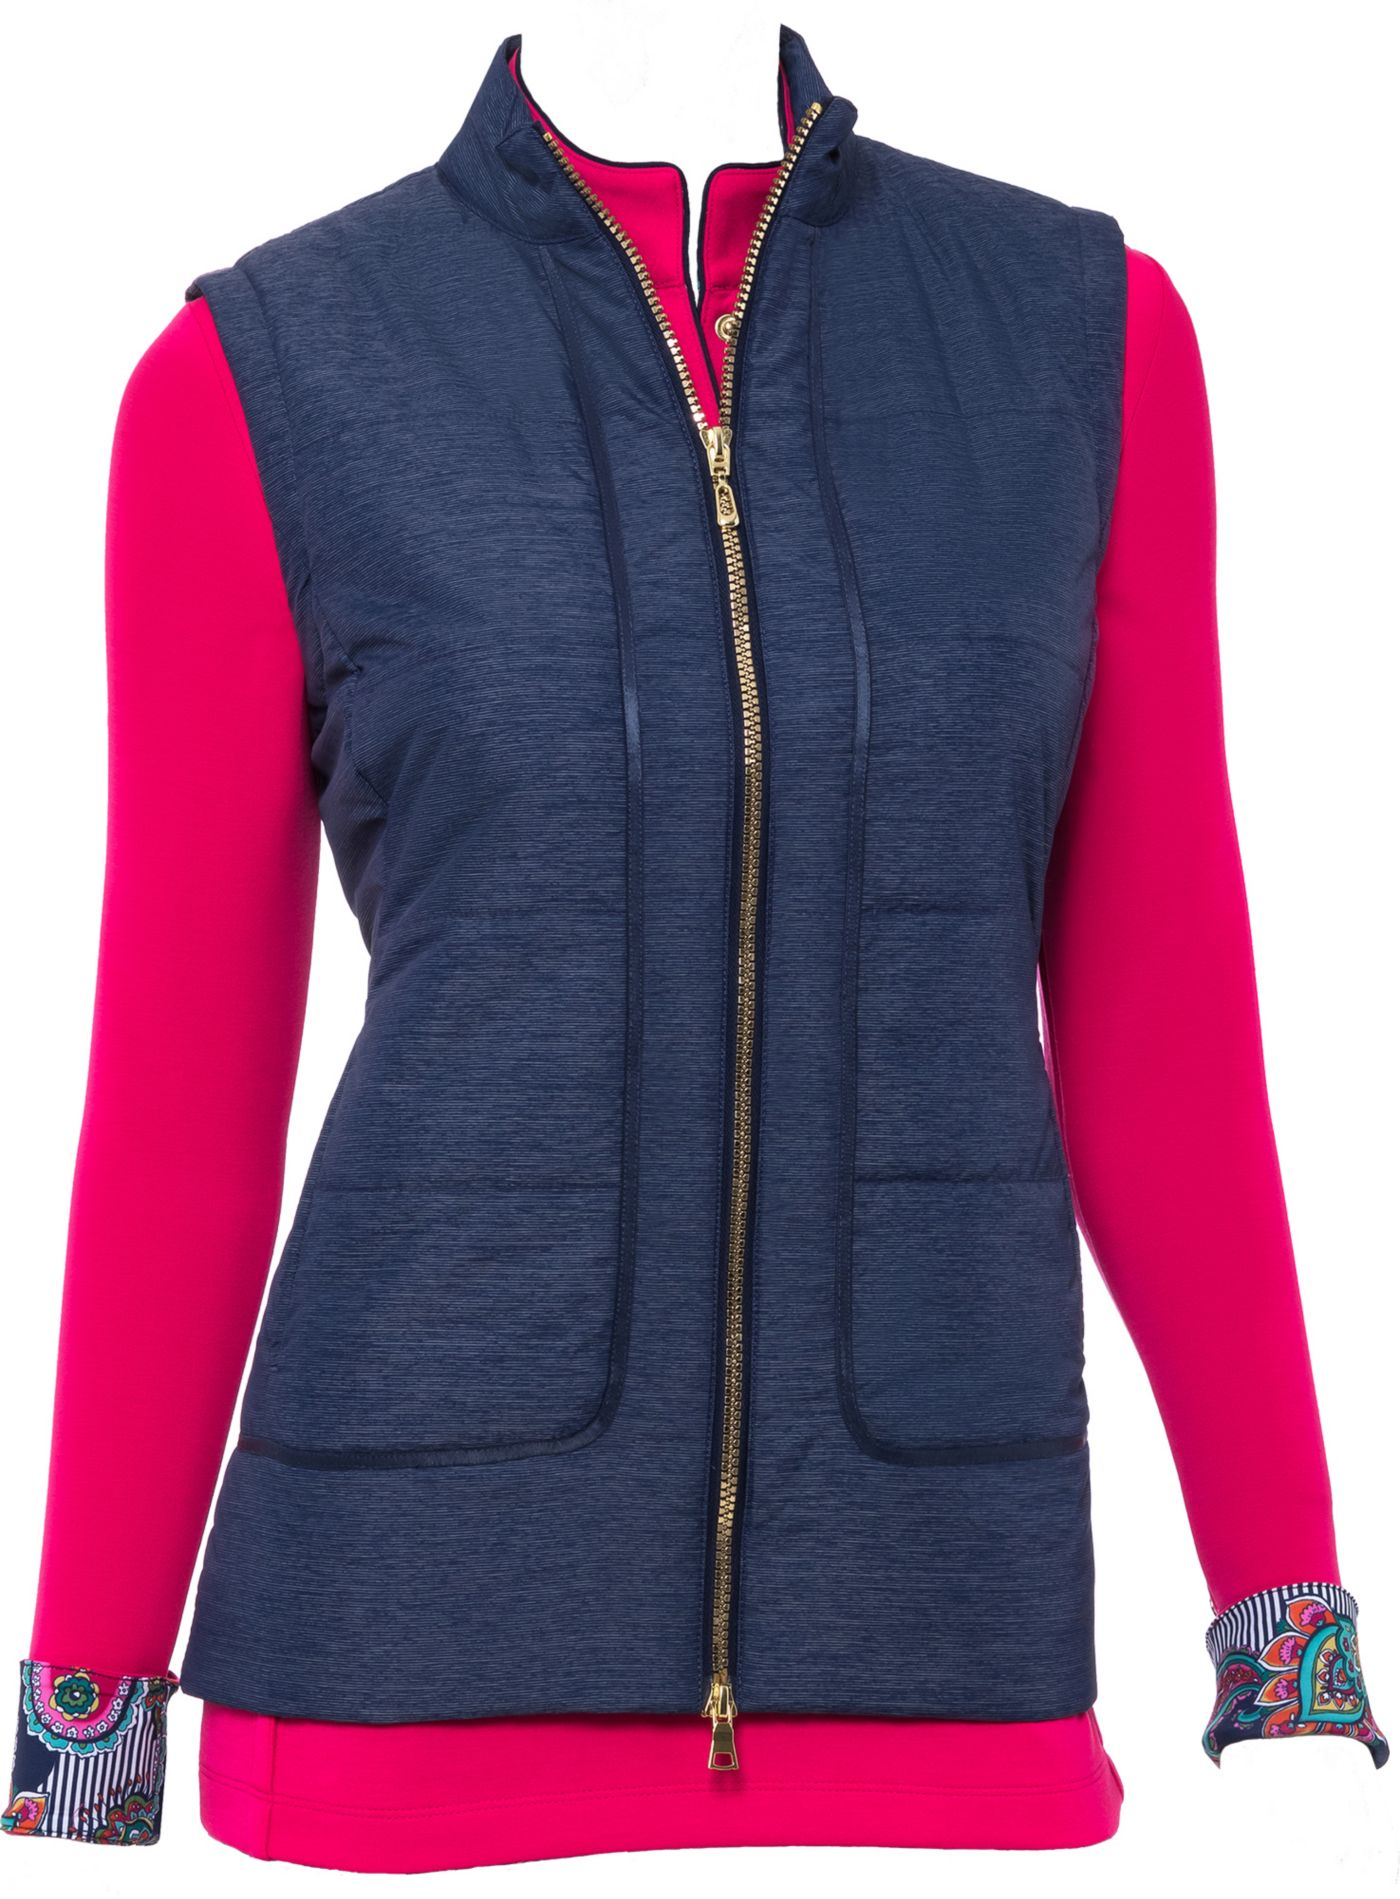 EP Pro Women's Quilt Ribbon Trim Golf Vest